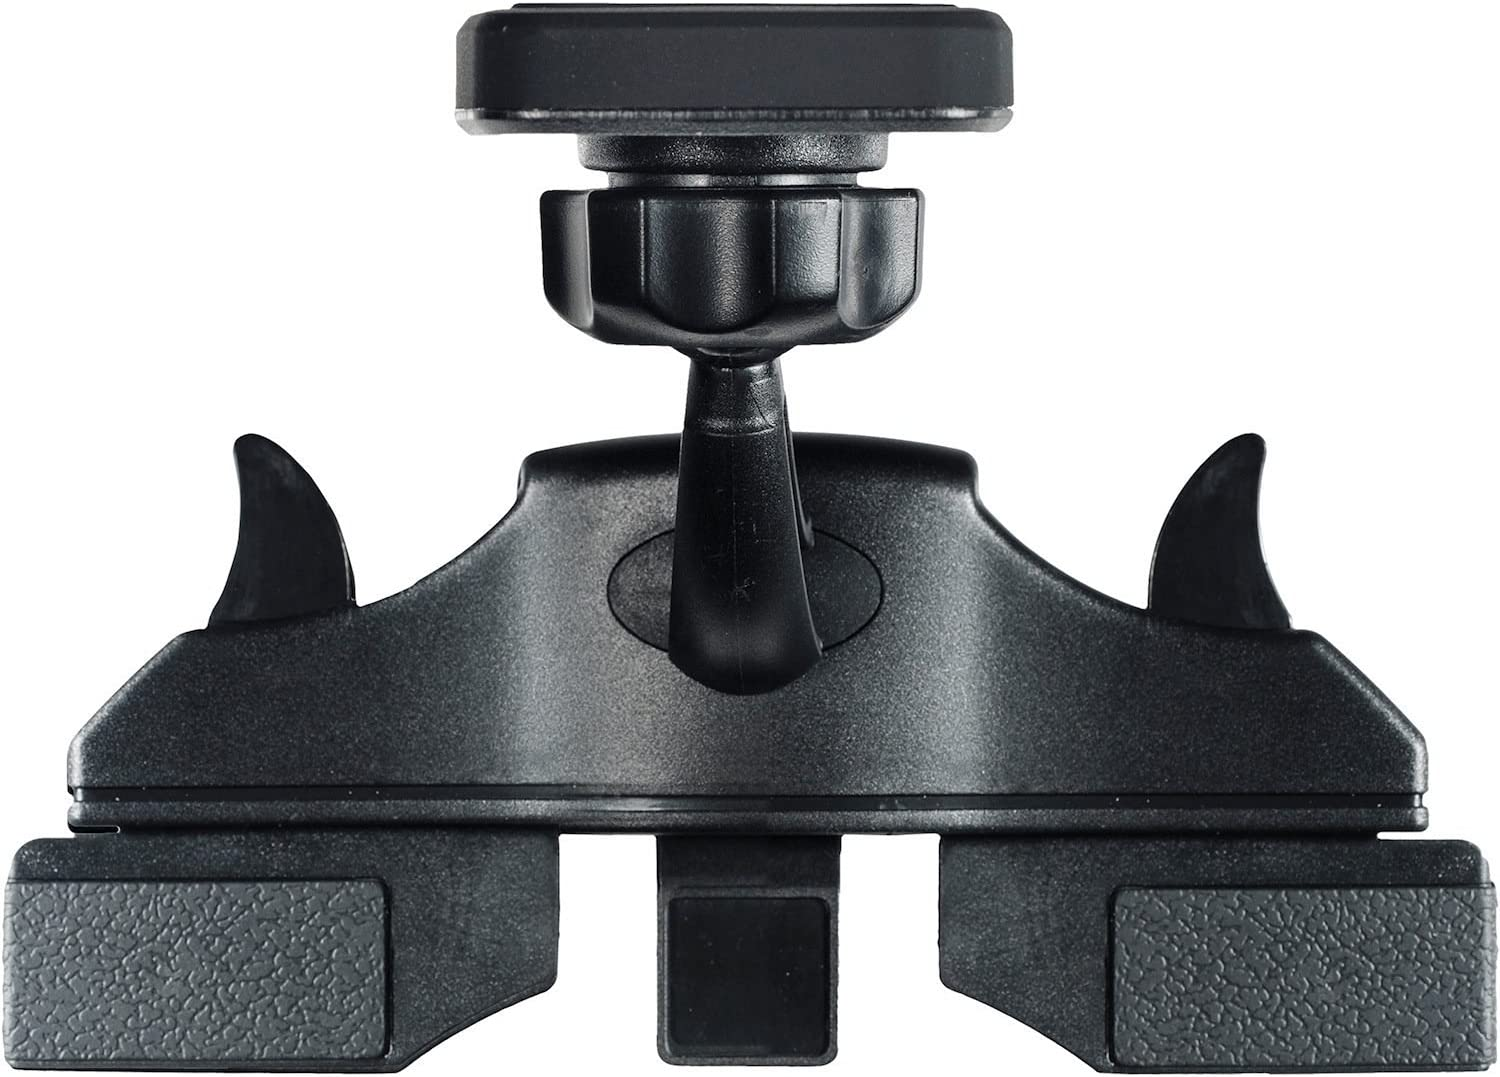 for Cell Phones and Mini Tablets with Fast Swift-Snap Technology, WizGear Cd Mount CD Slot Magnetic Car Mount Holder Fits Most Car Cd Slots